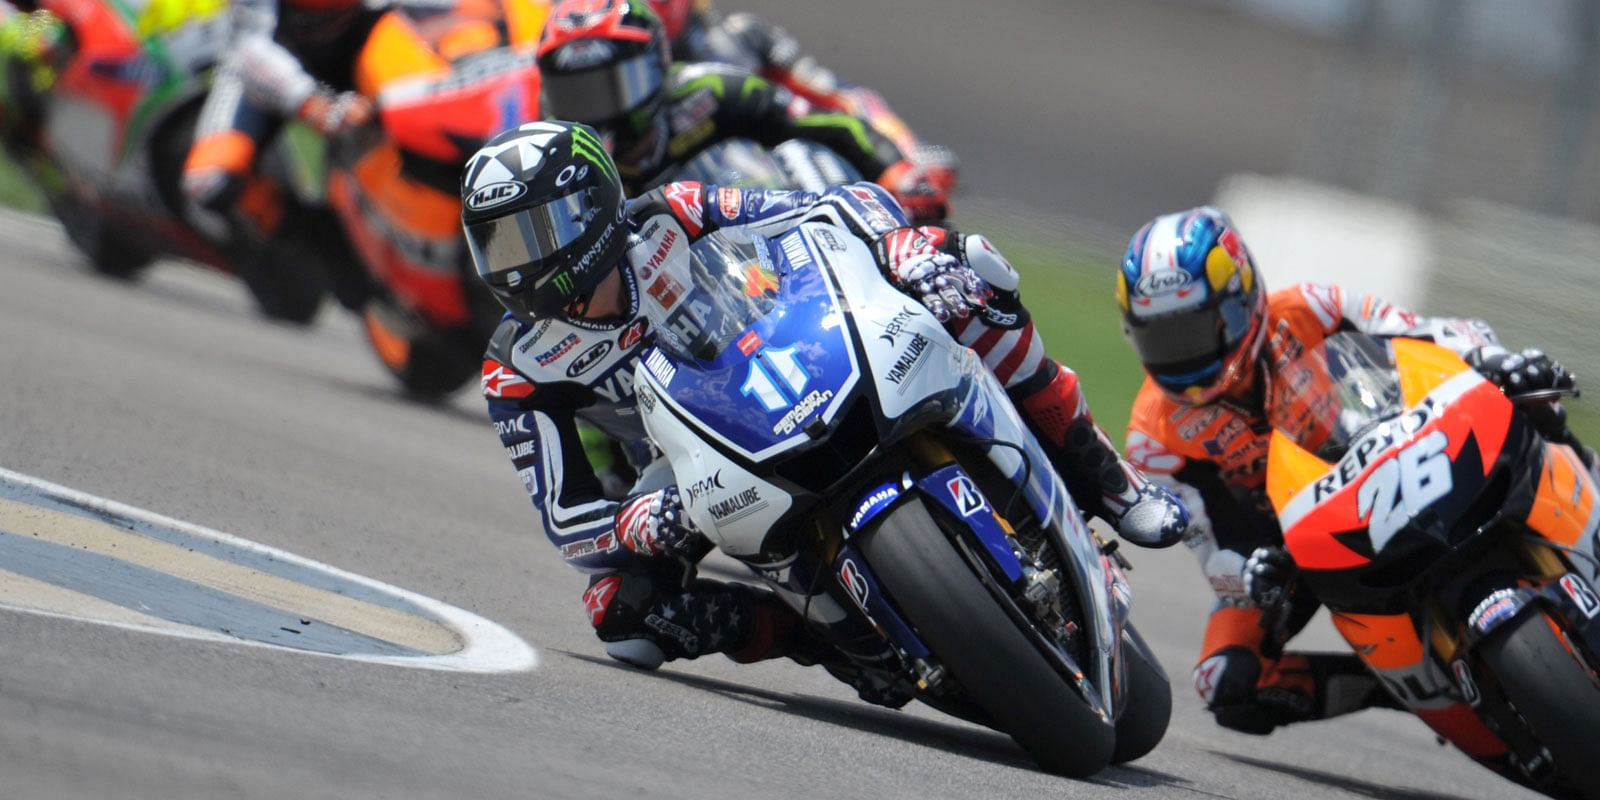 2015 Sachsenring MotoGP Preview